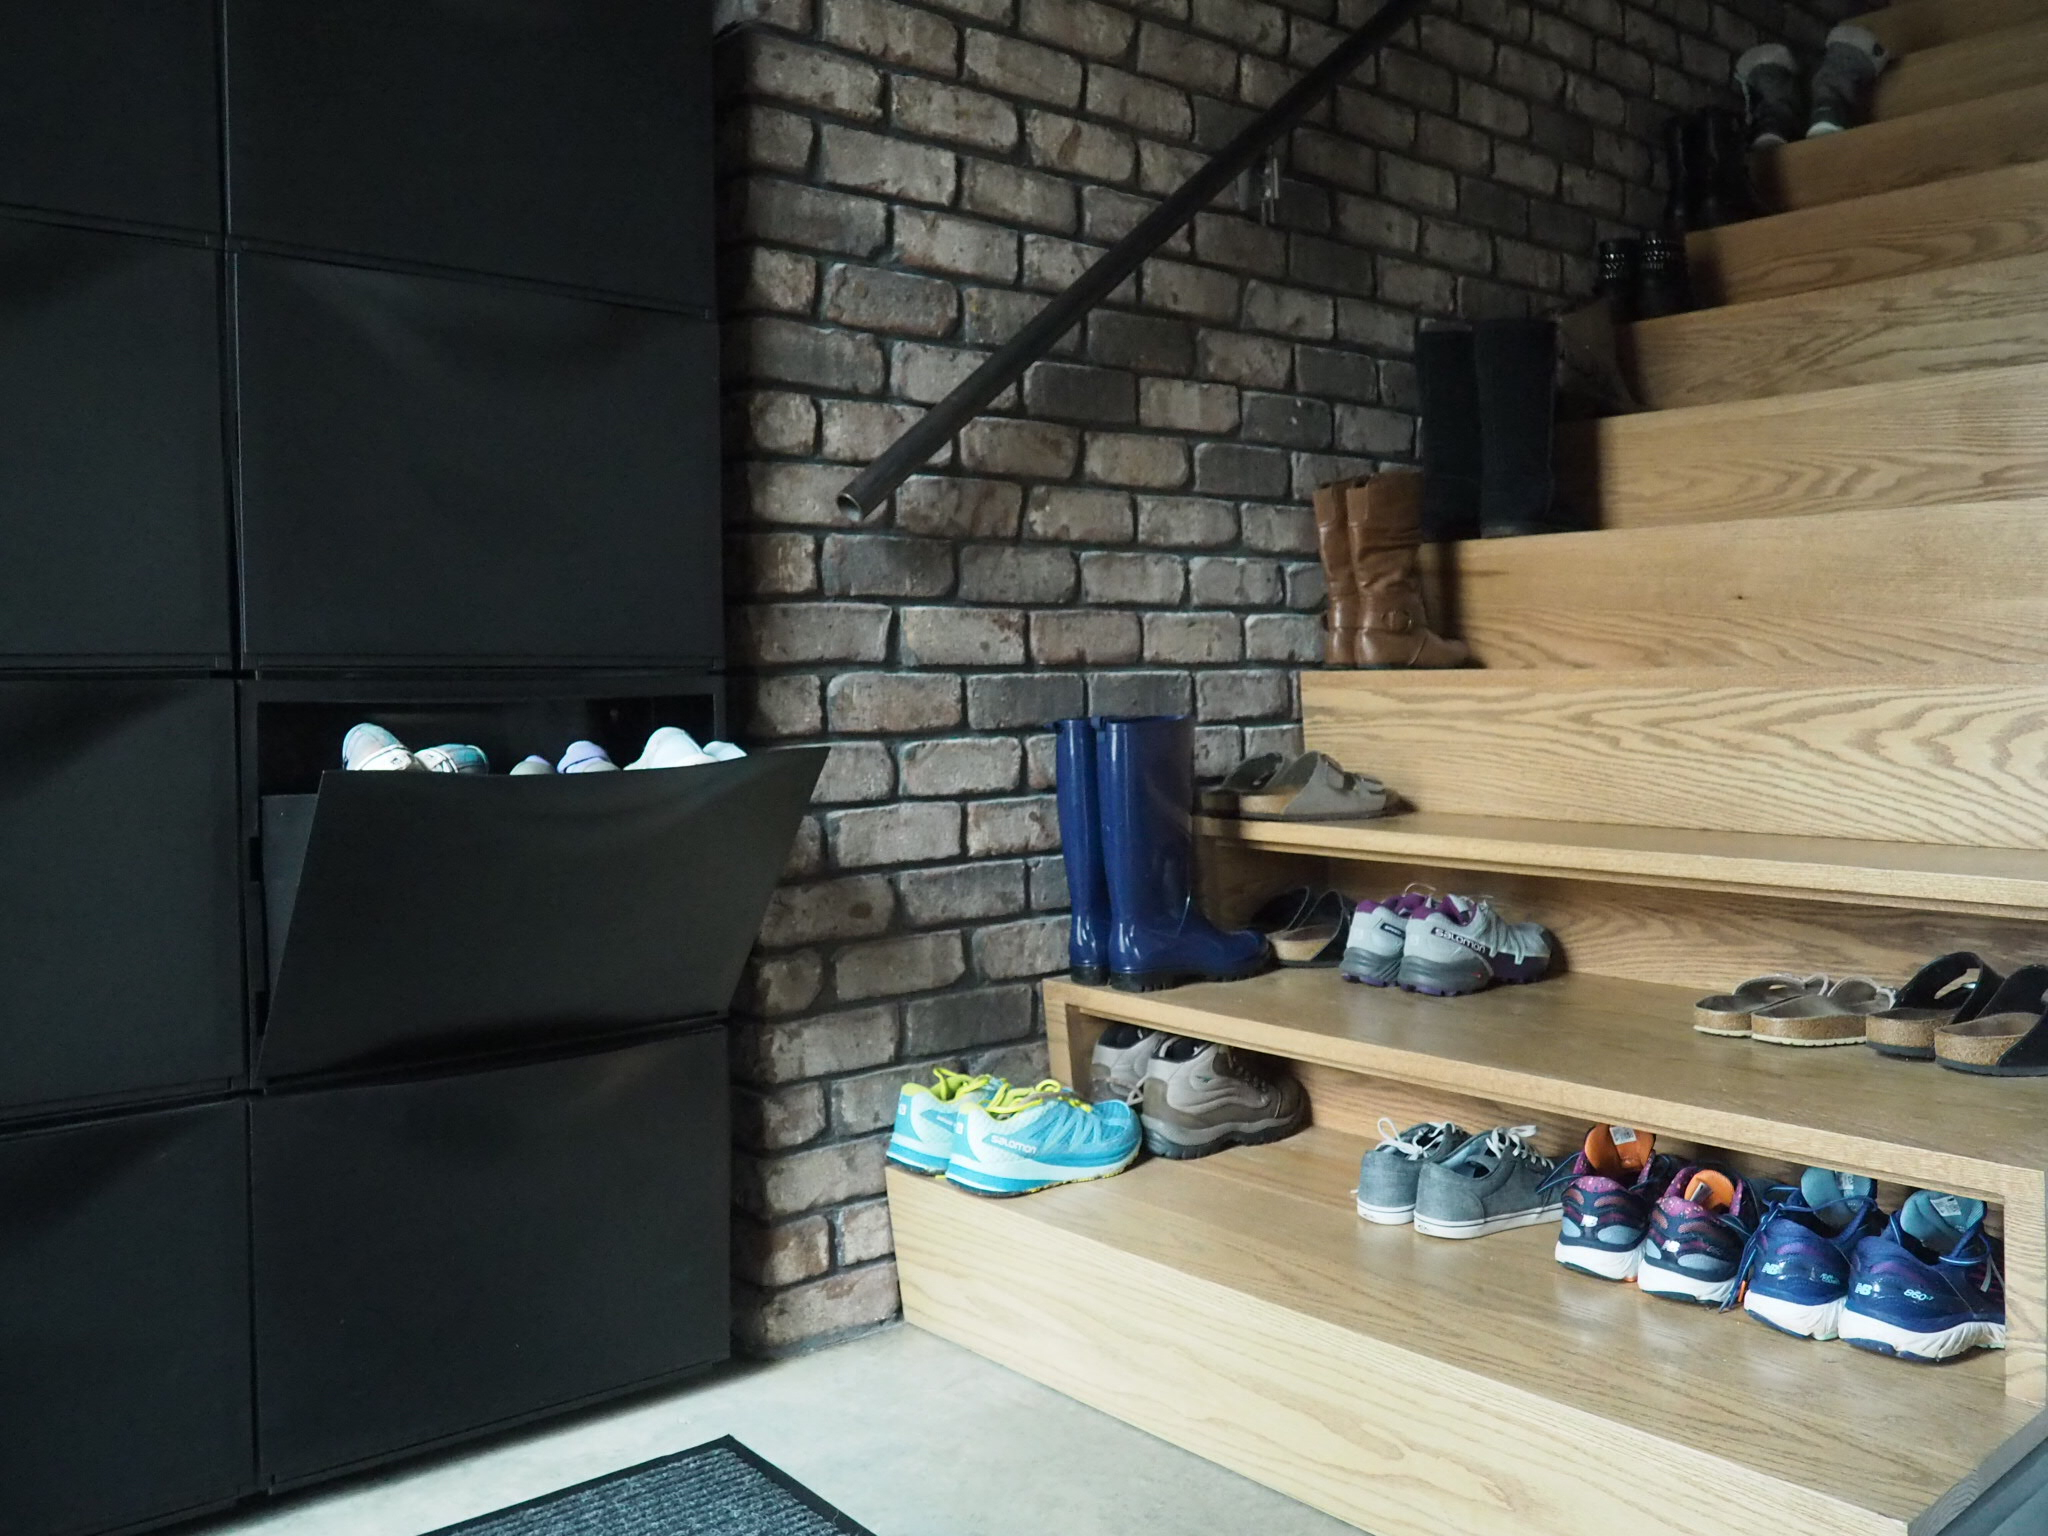 Plenty of shoe space and a place to sit and tie your shoes is given at the entry of the Witte Home.